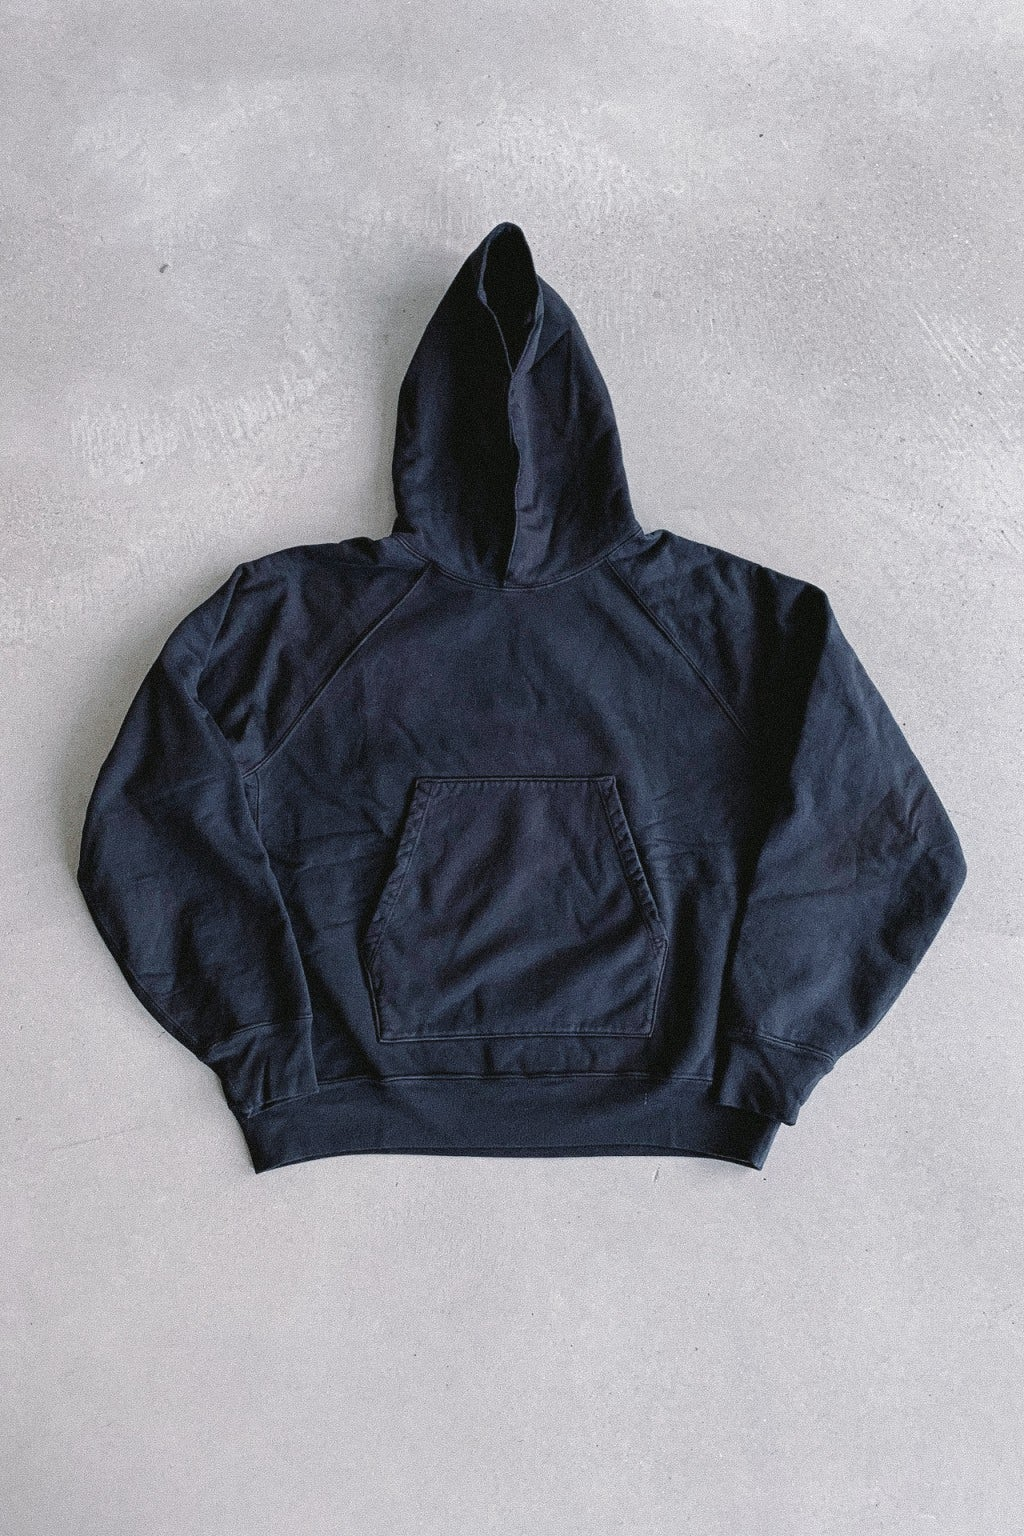 Lady White Co. Super Weighted Hoodie Black